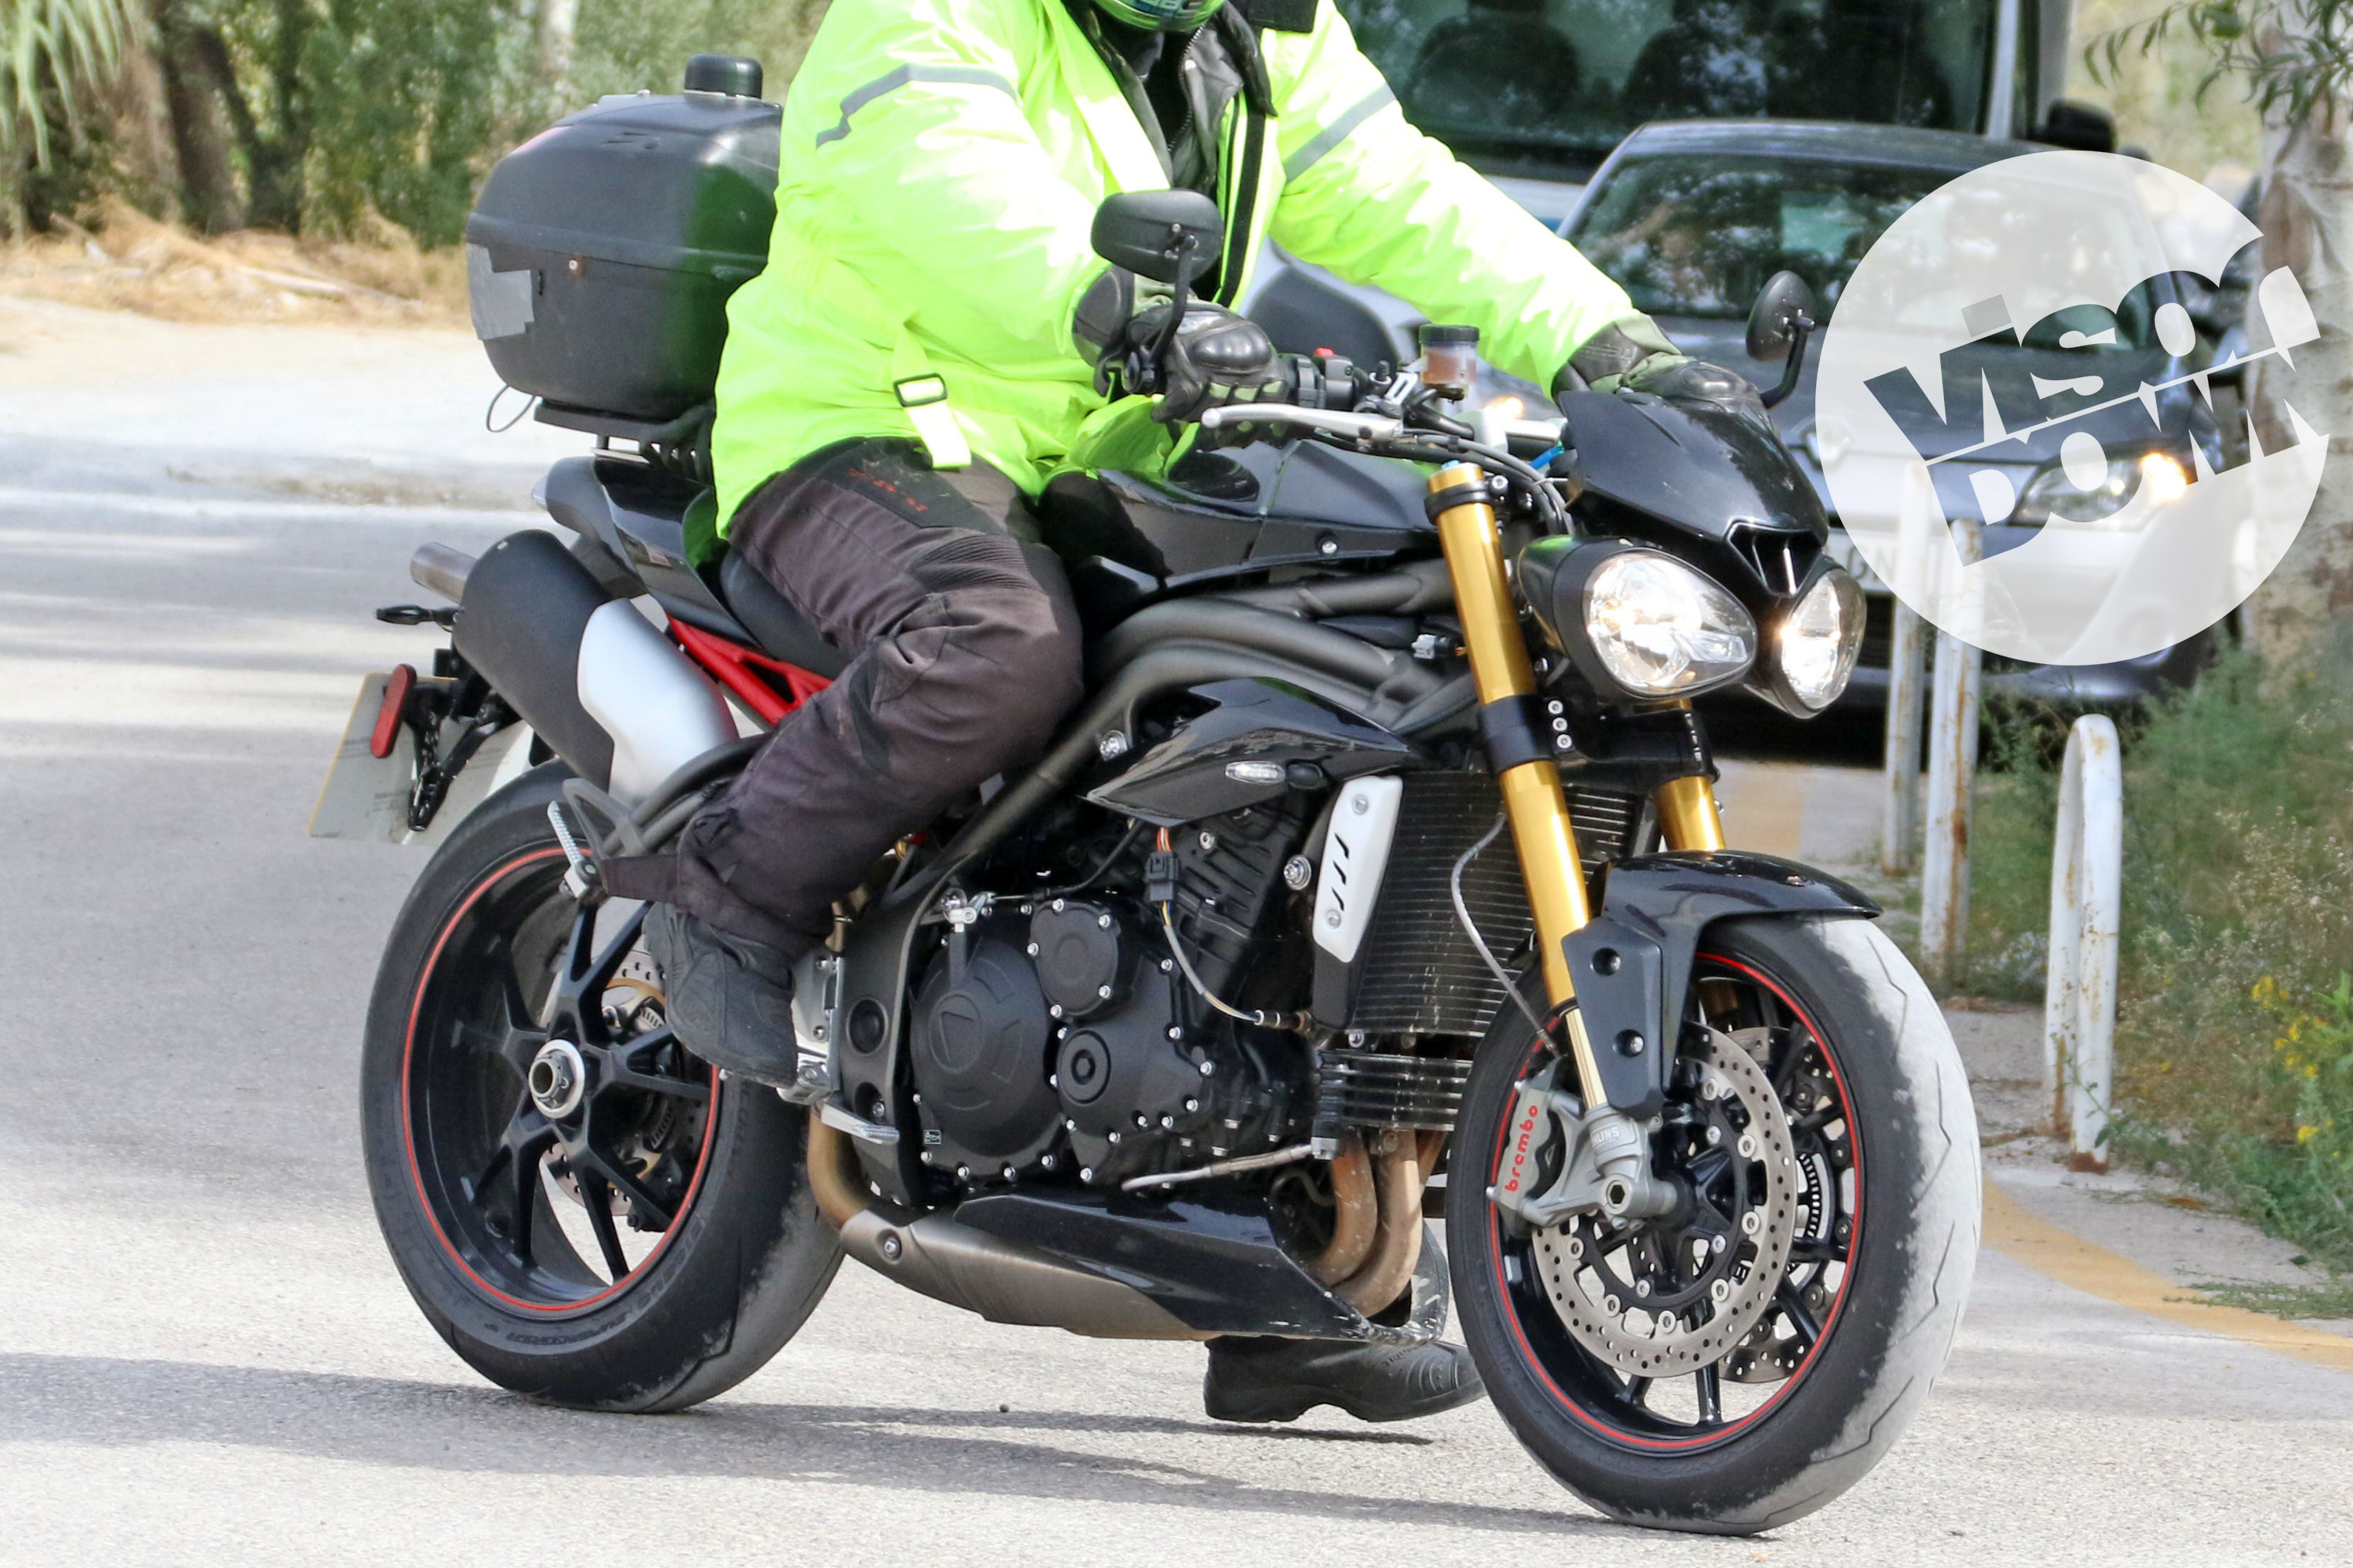 new triumph speed triple r revealed | visordown